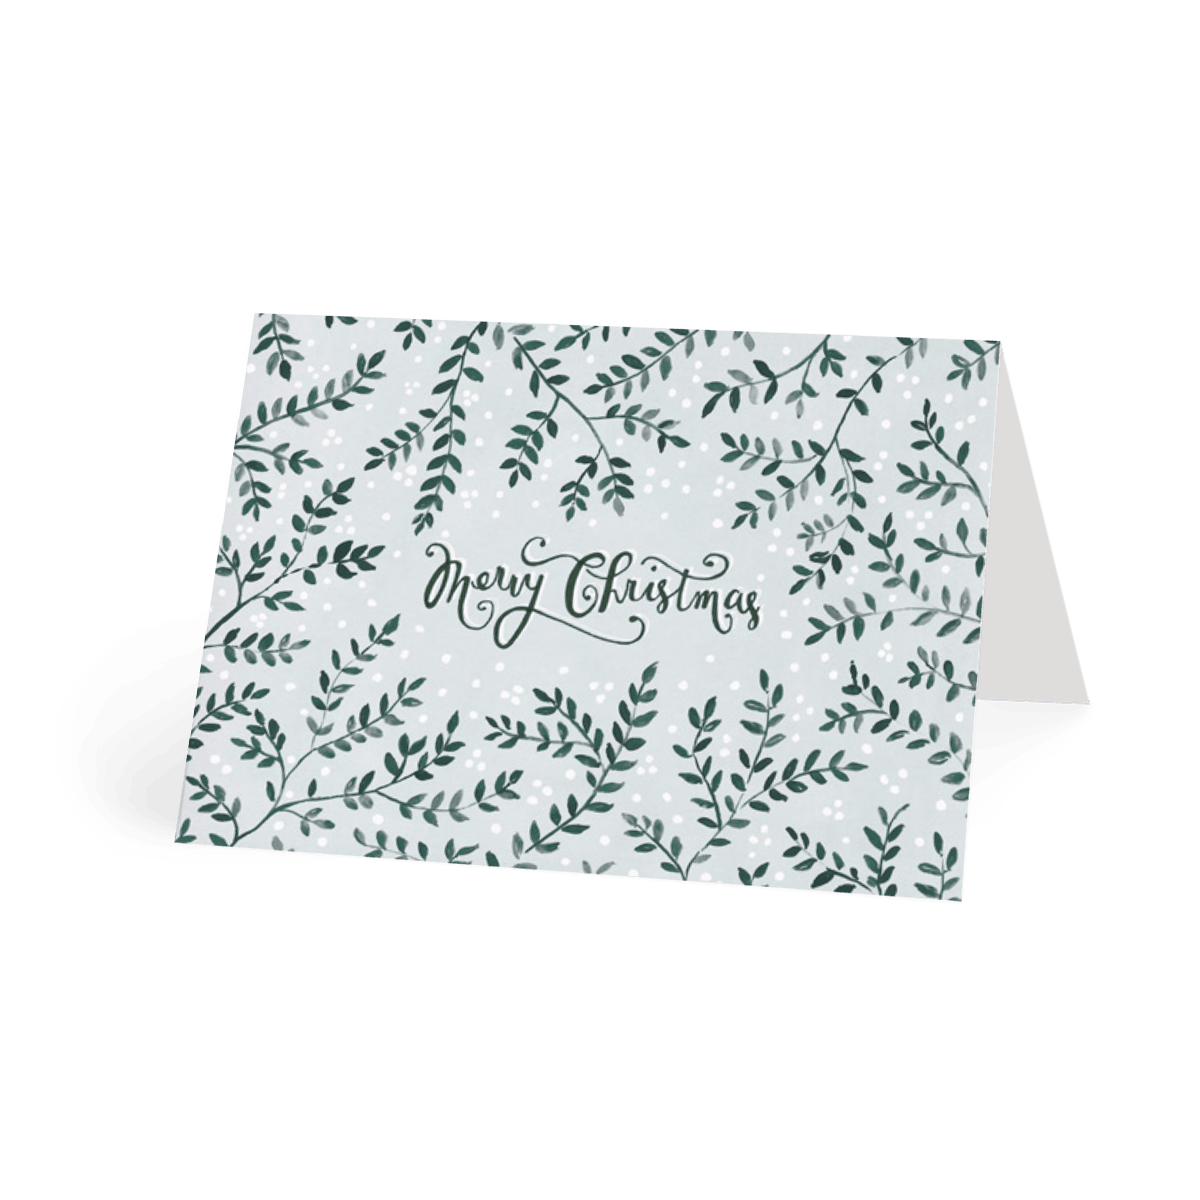 Https%3a%2f%2fwww.papier.com%2fproduct image%2f30157%2f14%2fchristmas snow berries 7606 front 1509027104.png?ixlib=rb 1.1